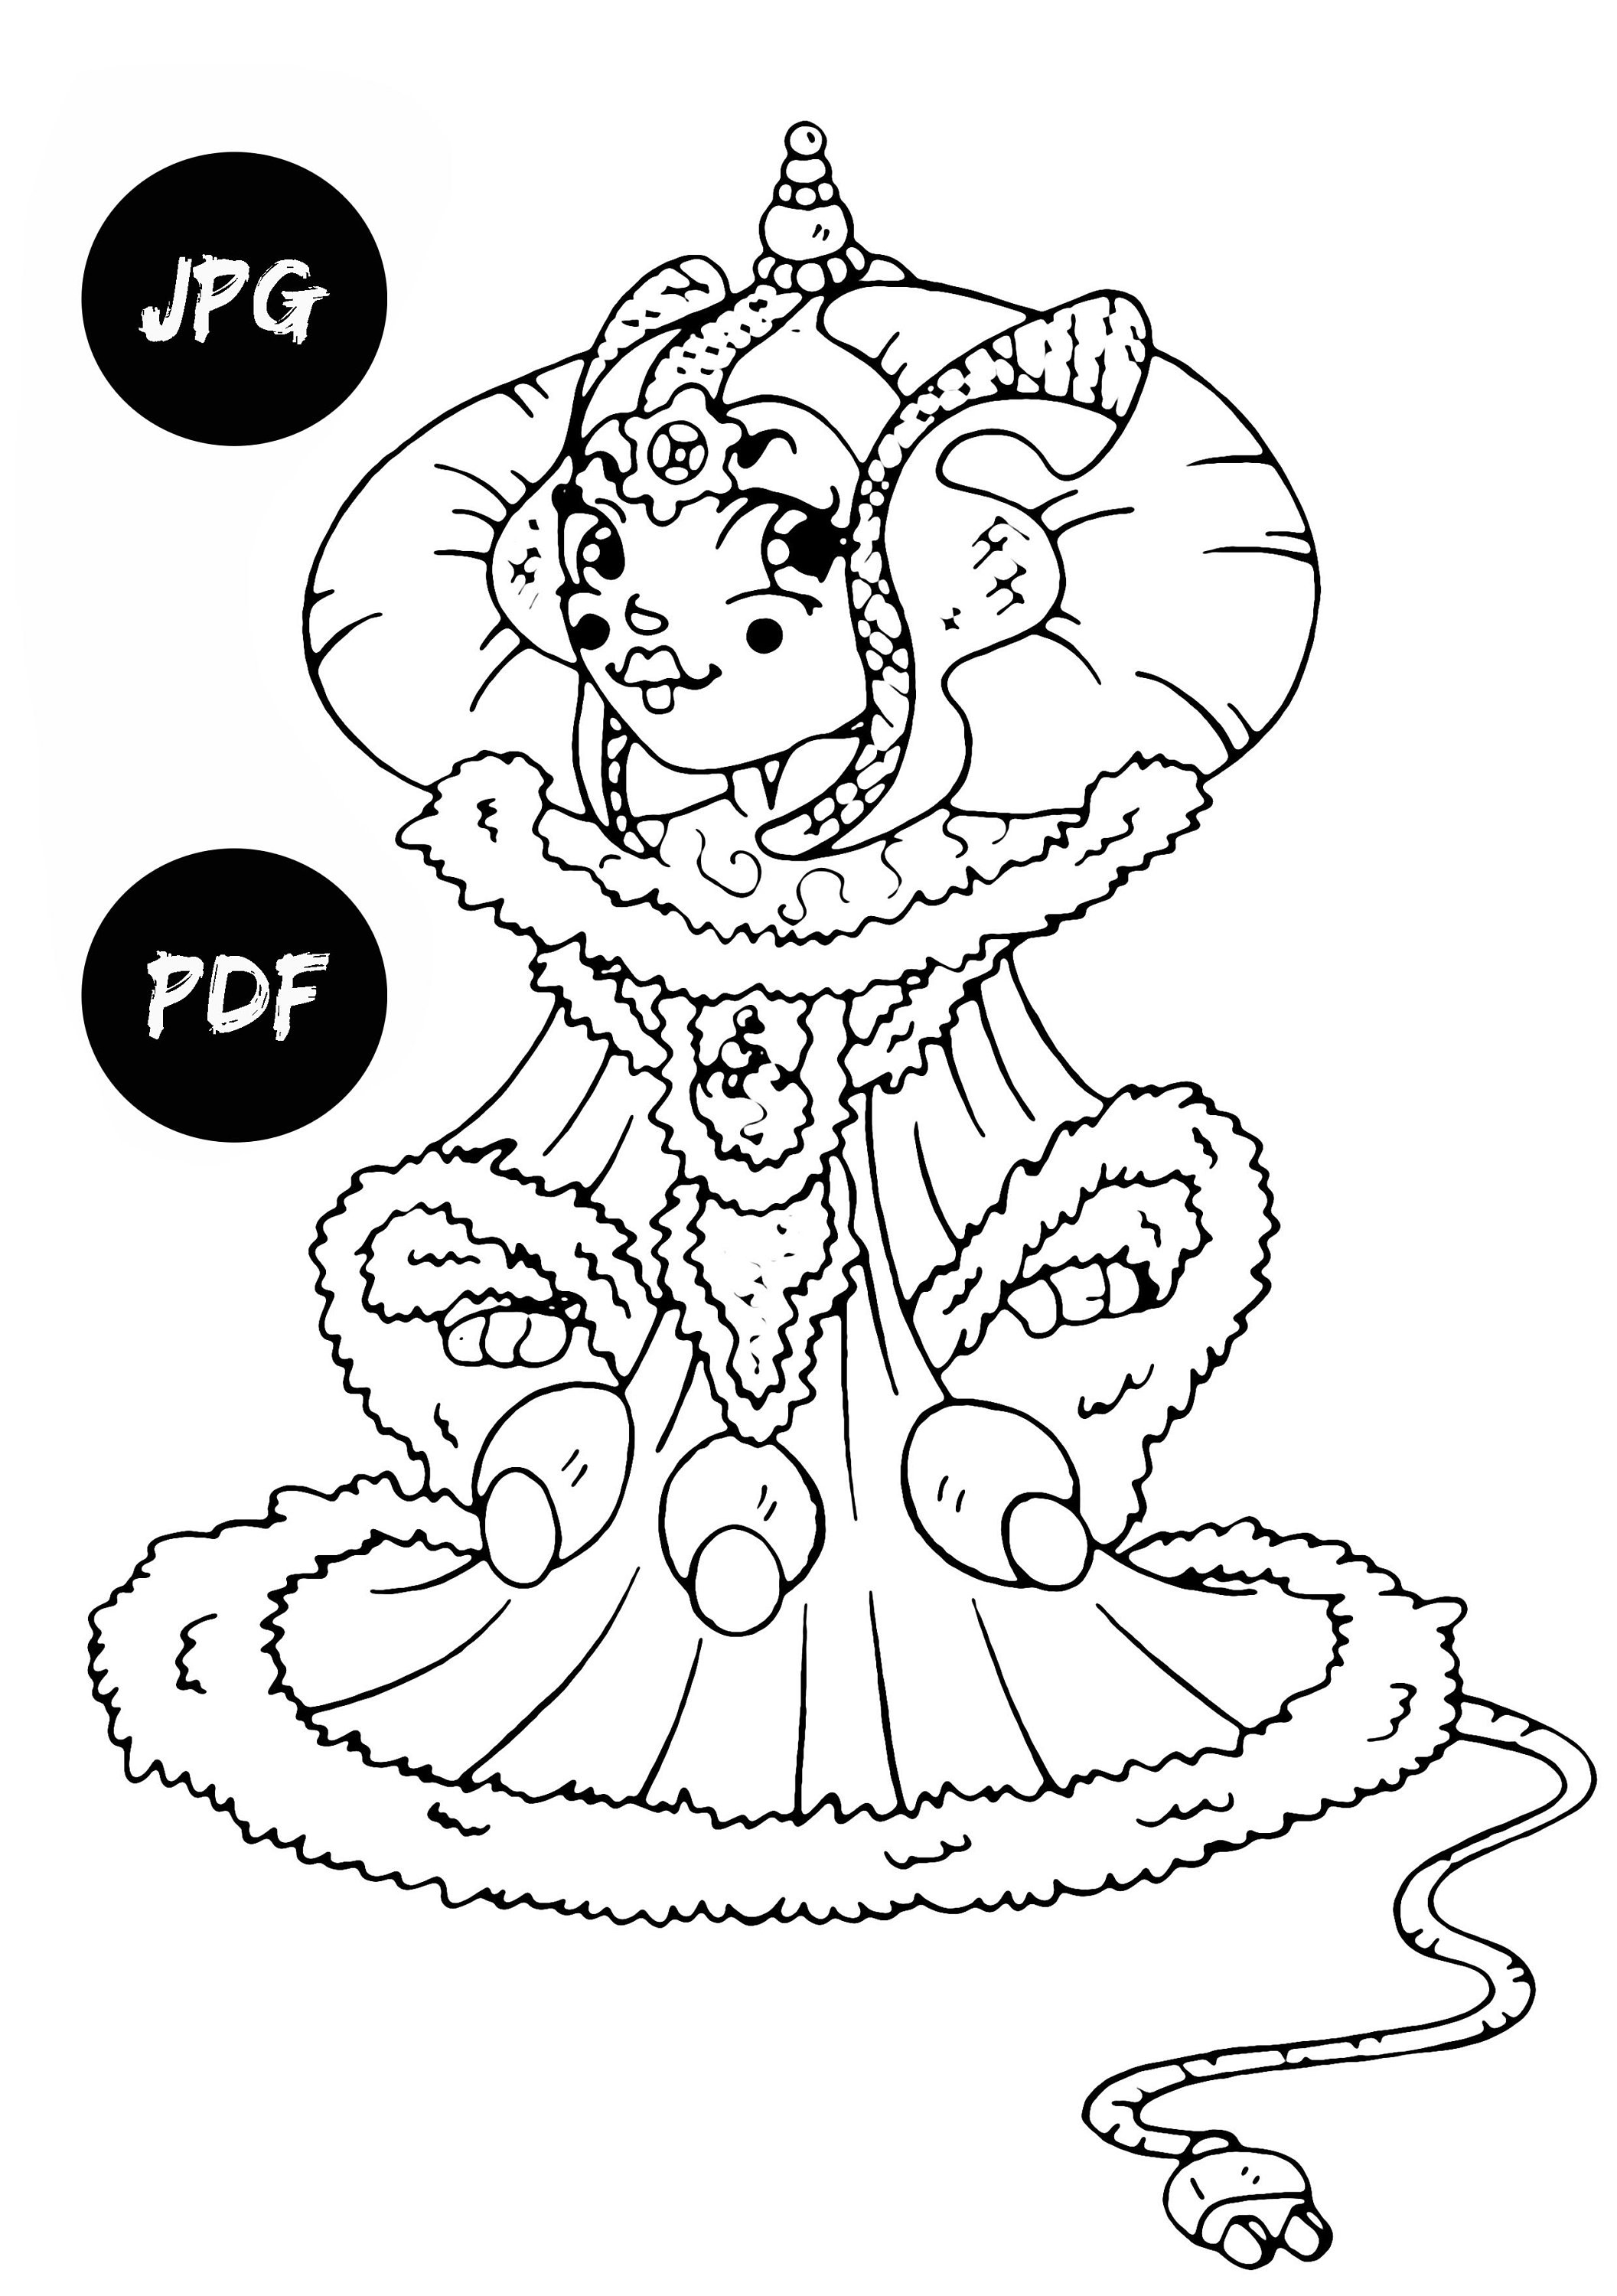 Digital Coloring Pages at GetDrawings.com   Free for ...